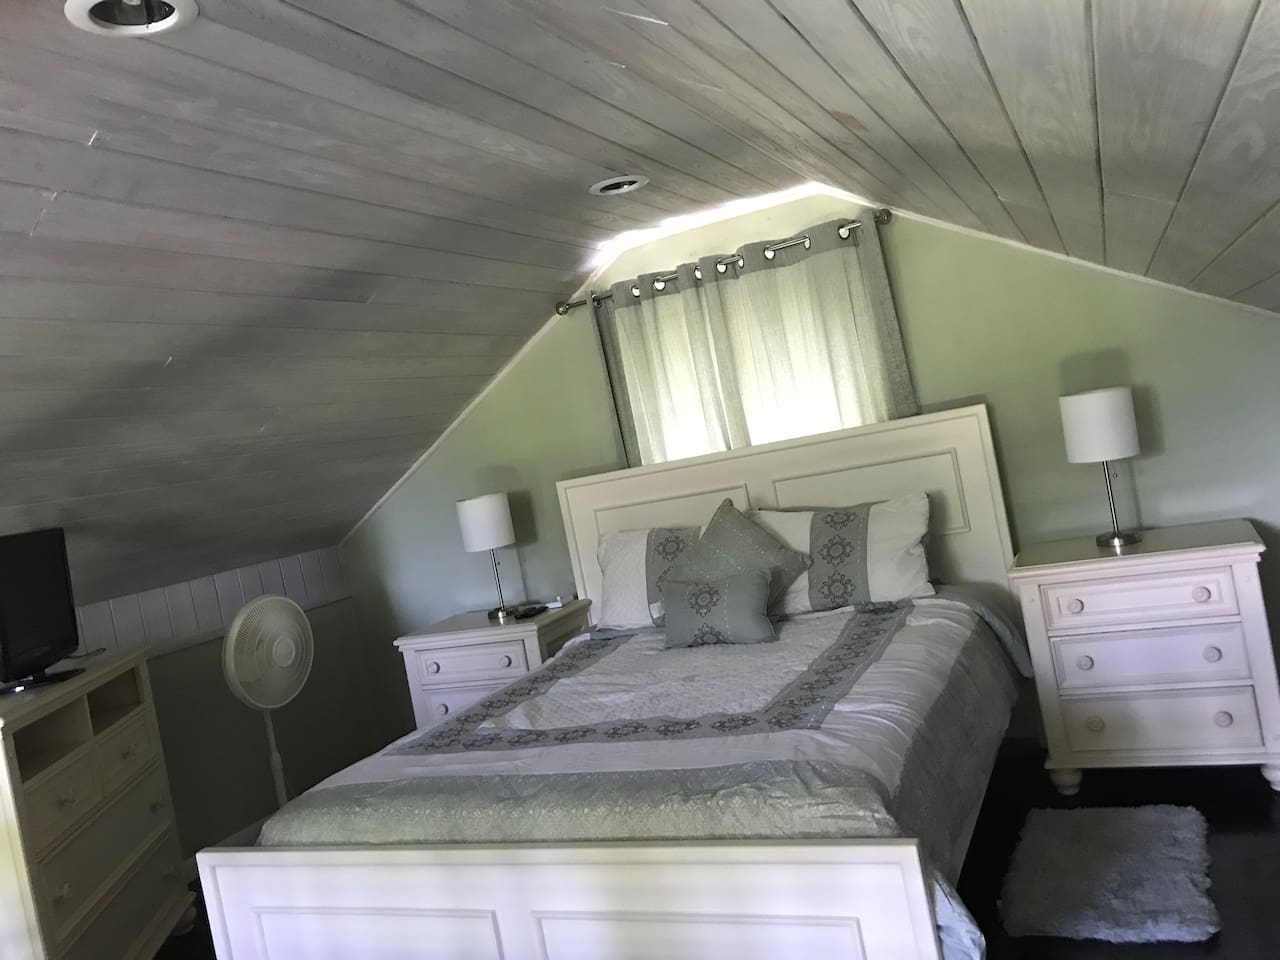 Loft bedroom with queen size bed